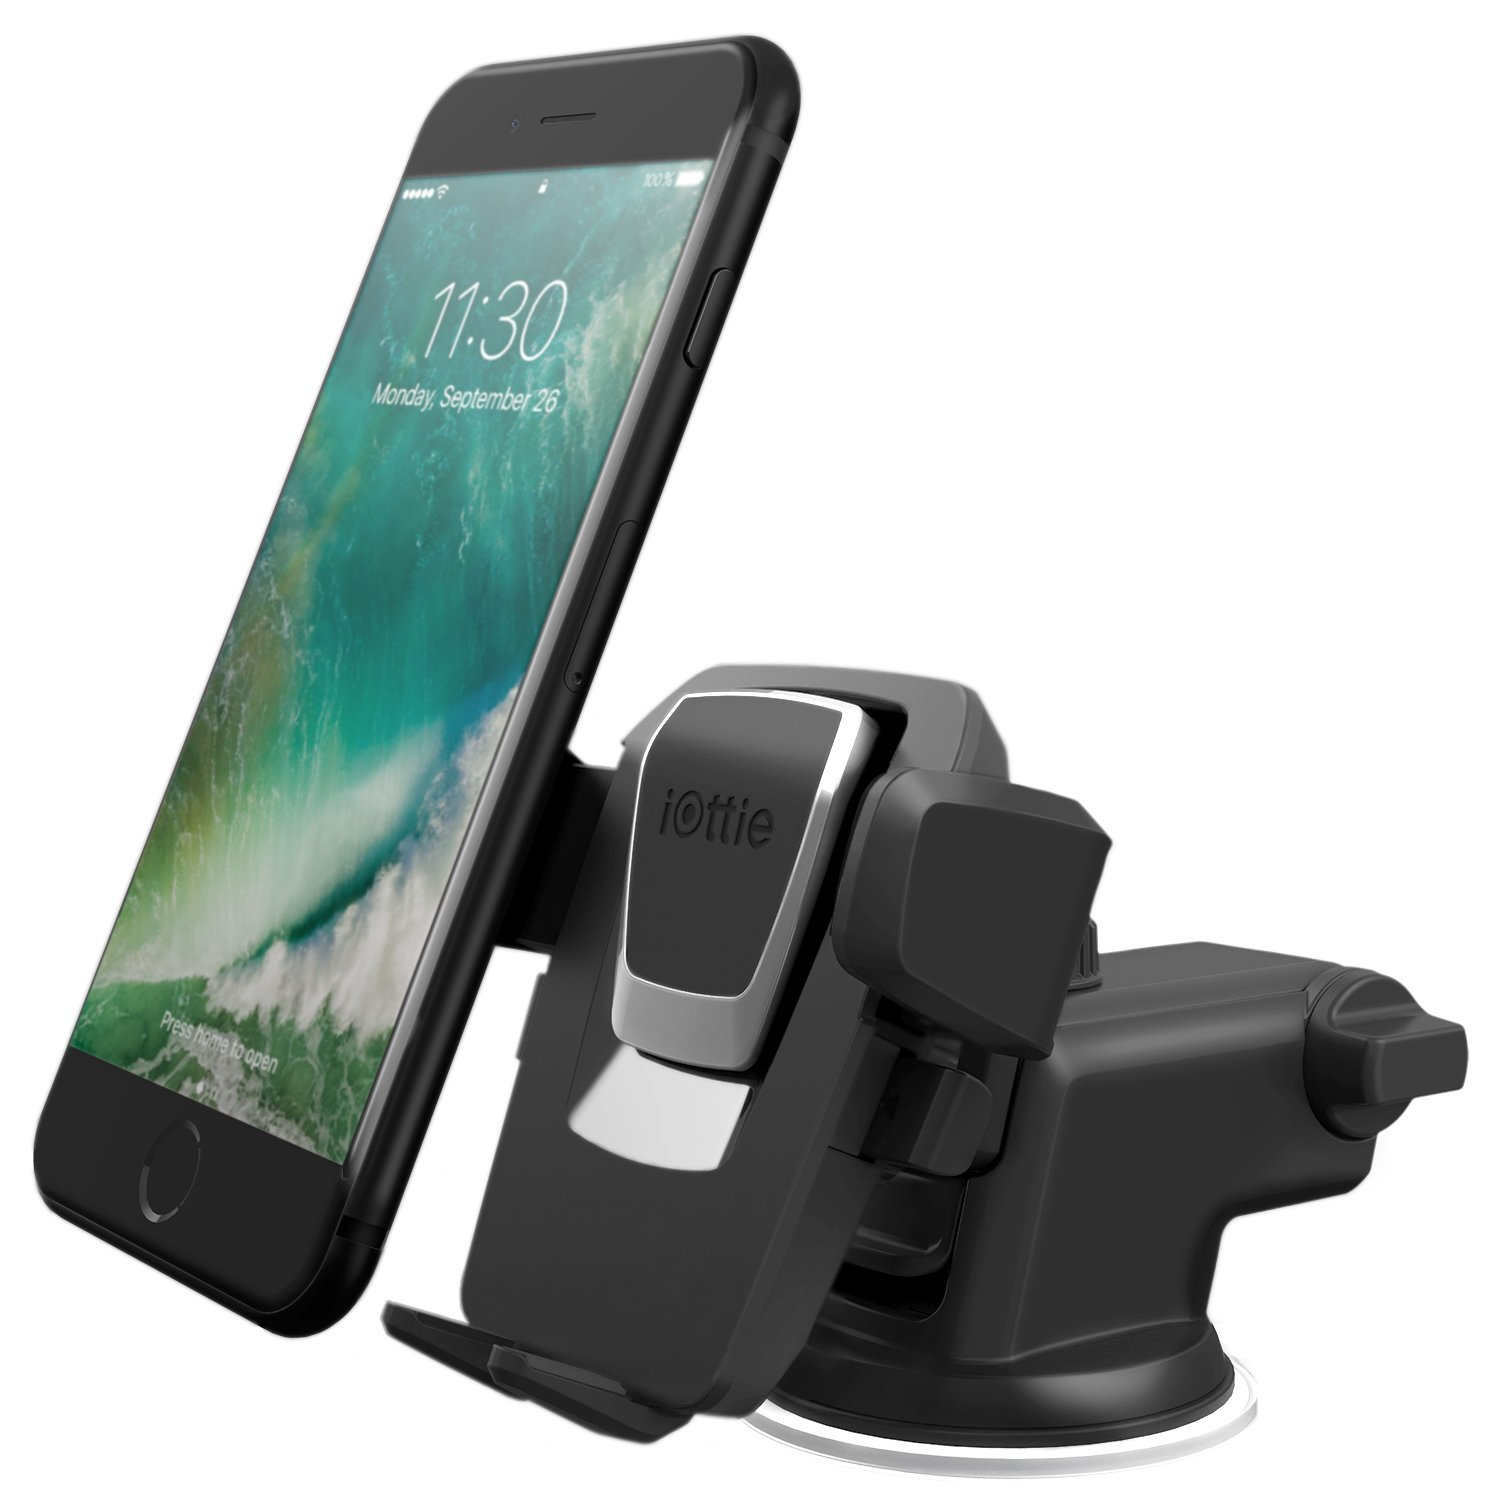 Amazon com iottie easy one touch 3 v2 0 car mount universal phone holder for iphone x 8 8s 7 7 plus 6s plus 6s 6 se samsung galaxy s8 plus s8 edge s7 s6